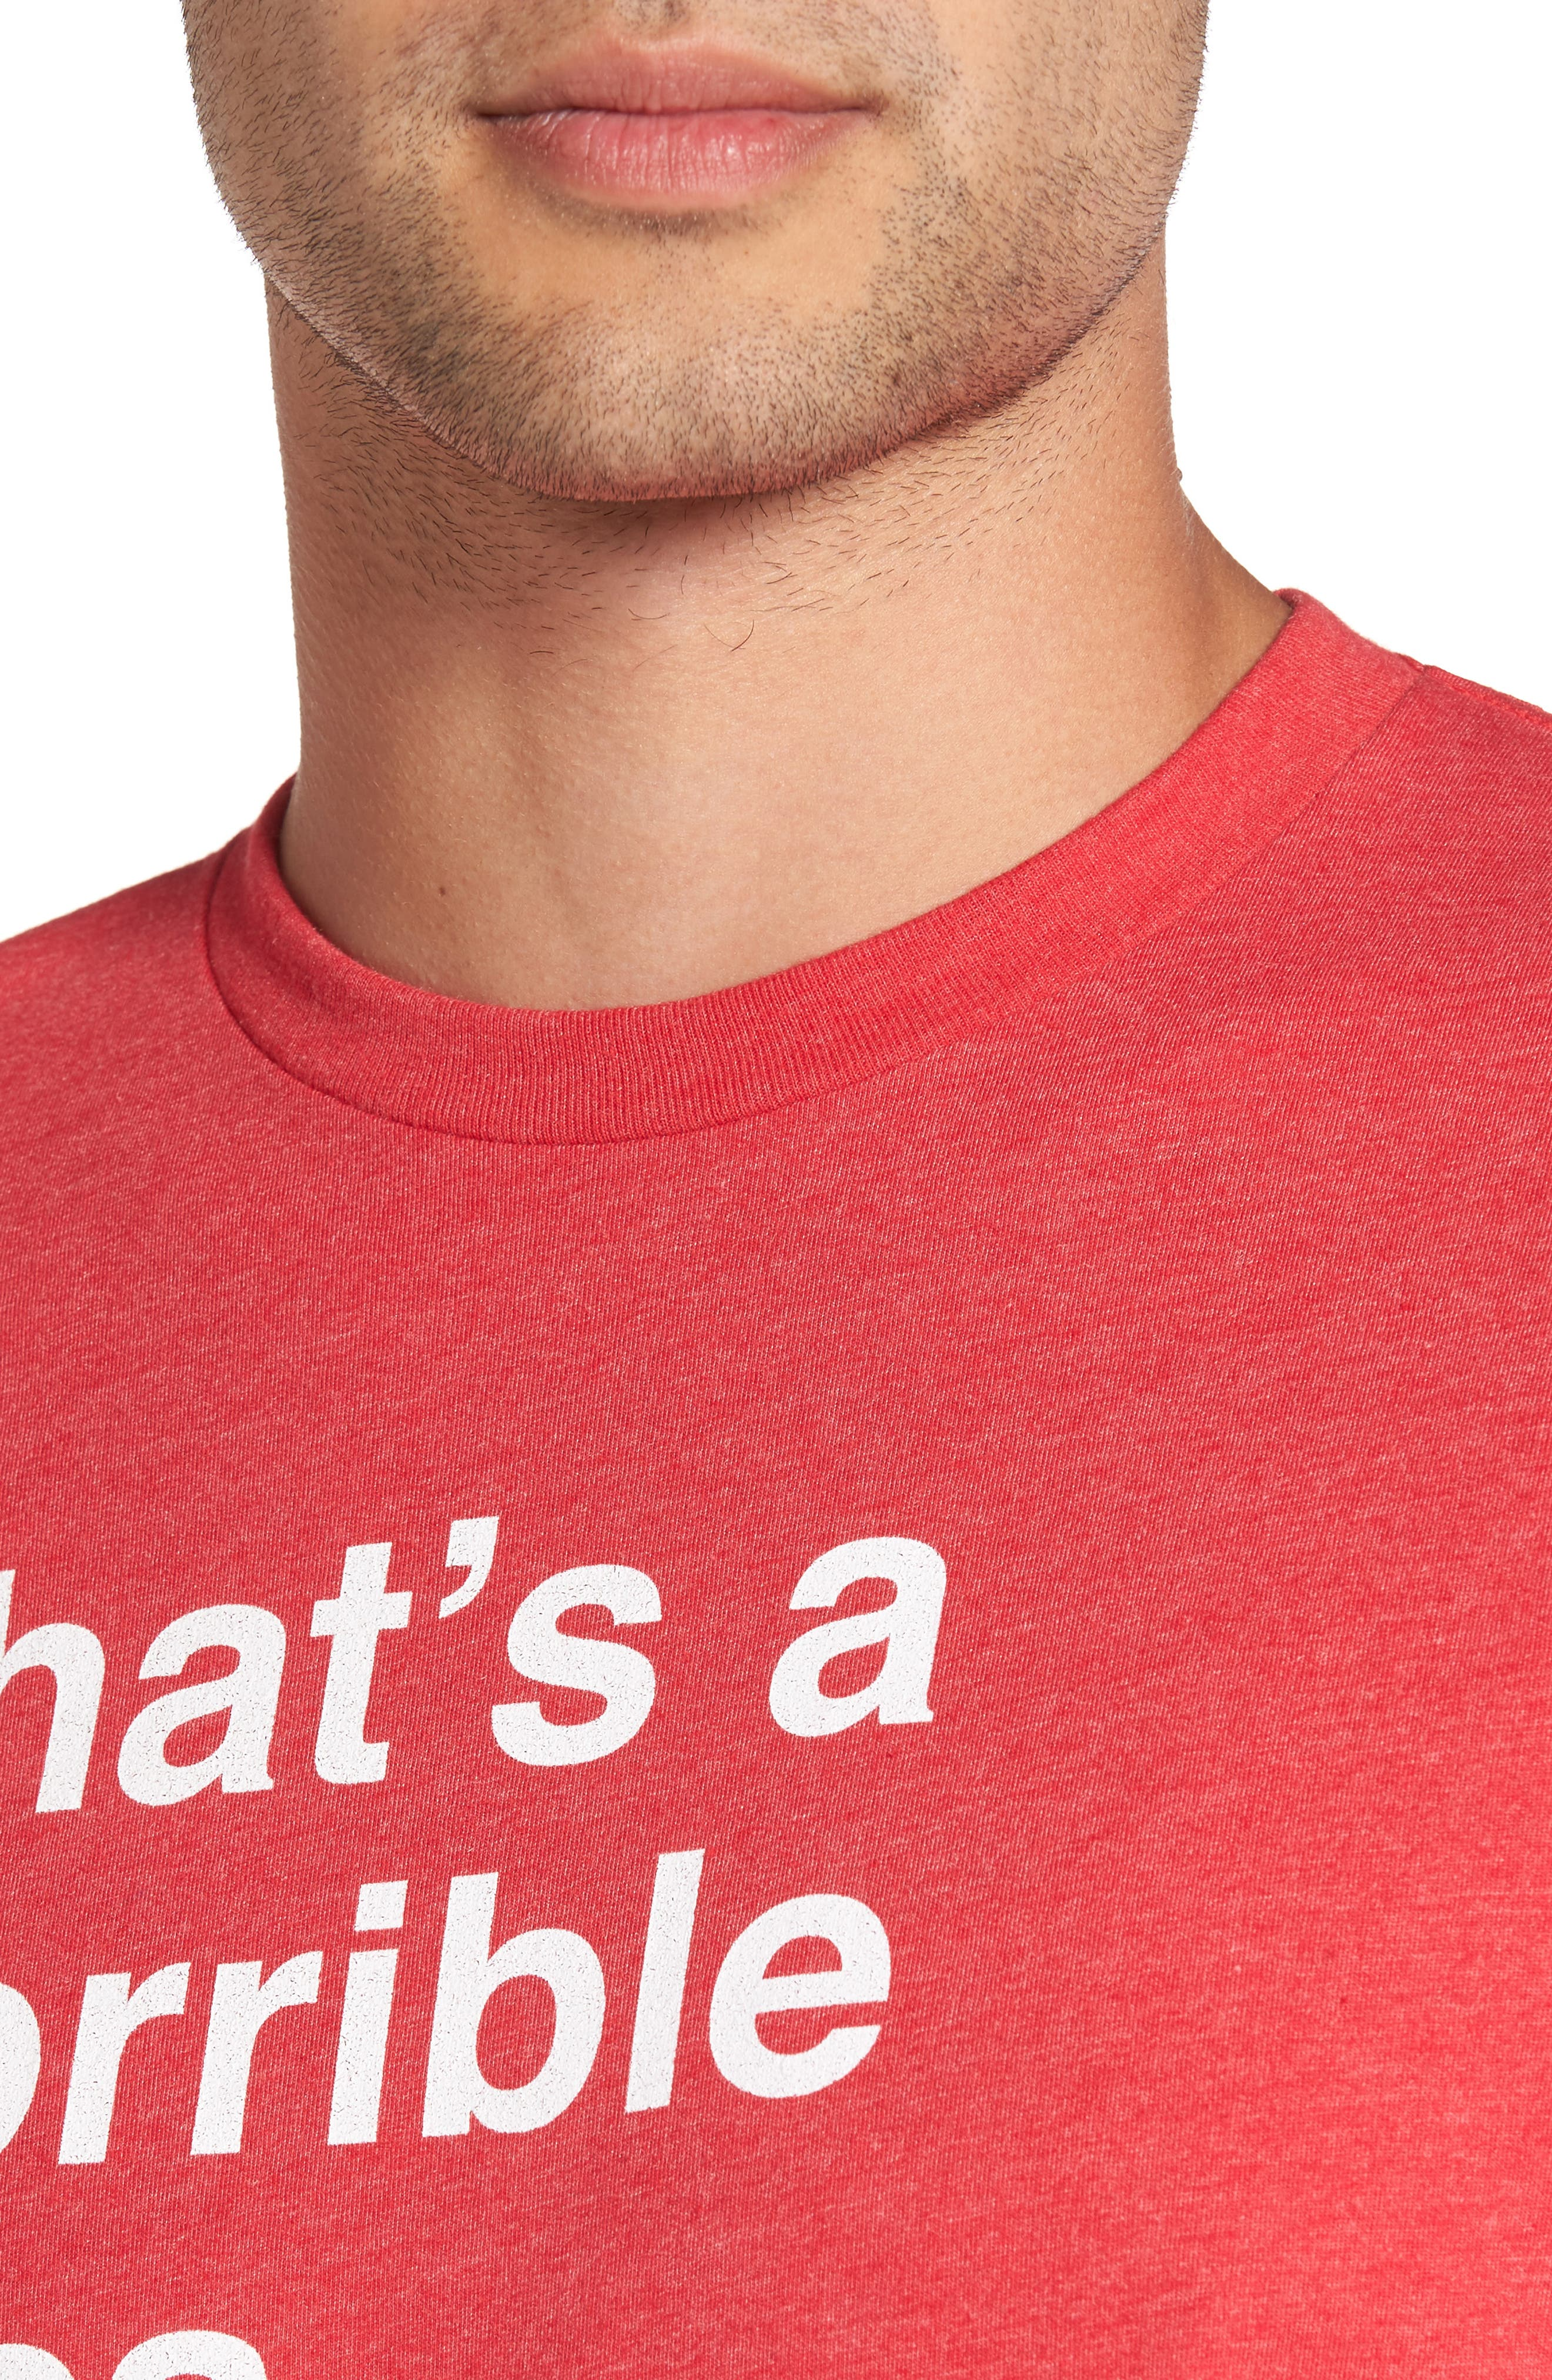 Horrible Idea Graphic T-Shirt,                             Alternate thumbnail 4, color,                             Red